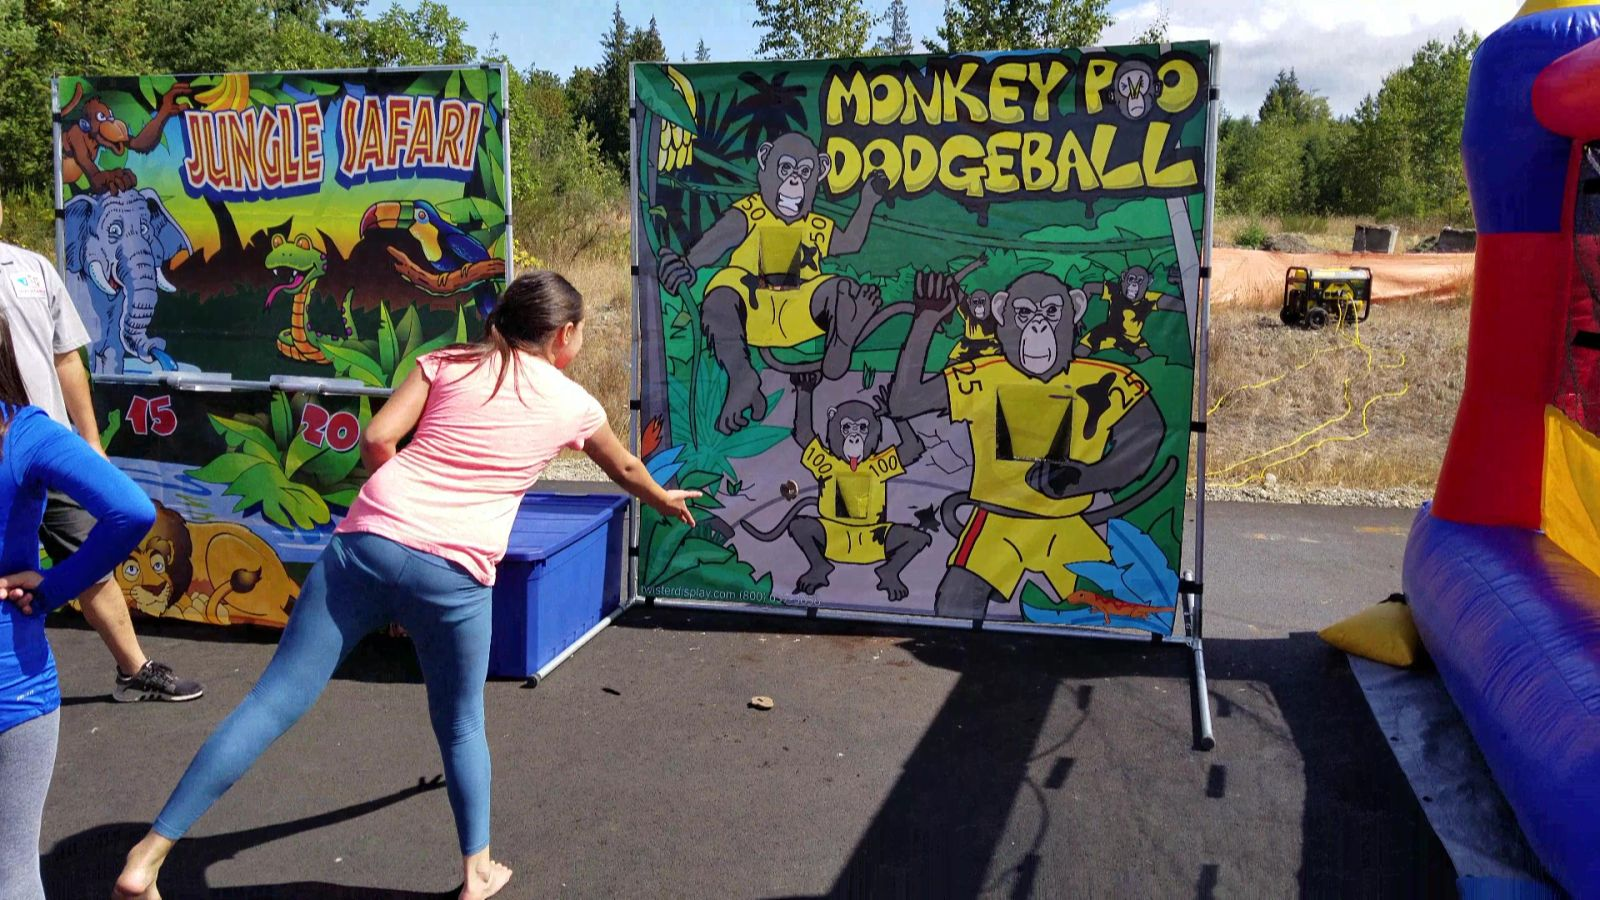 Monkey Poo Dodge Ball